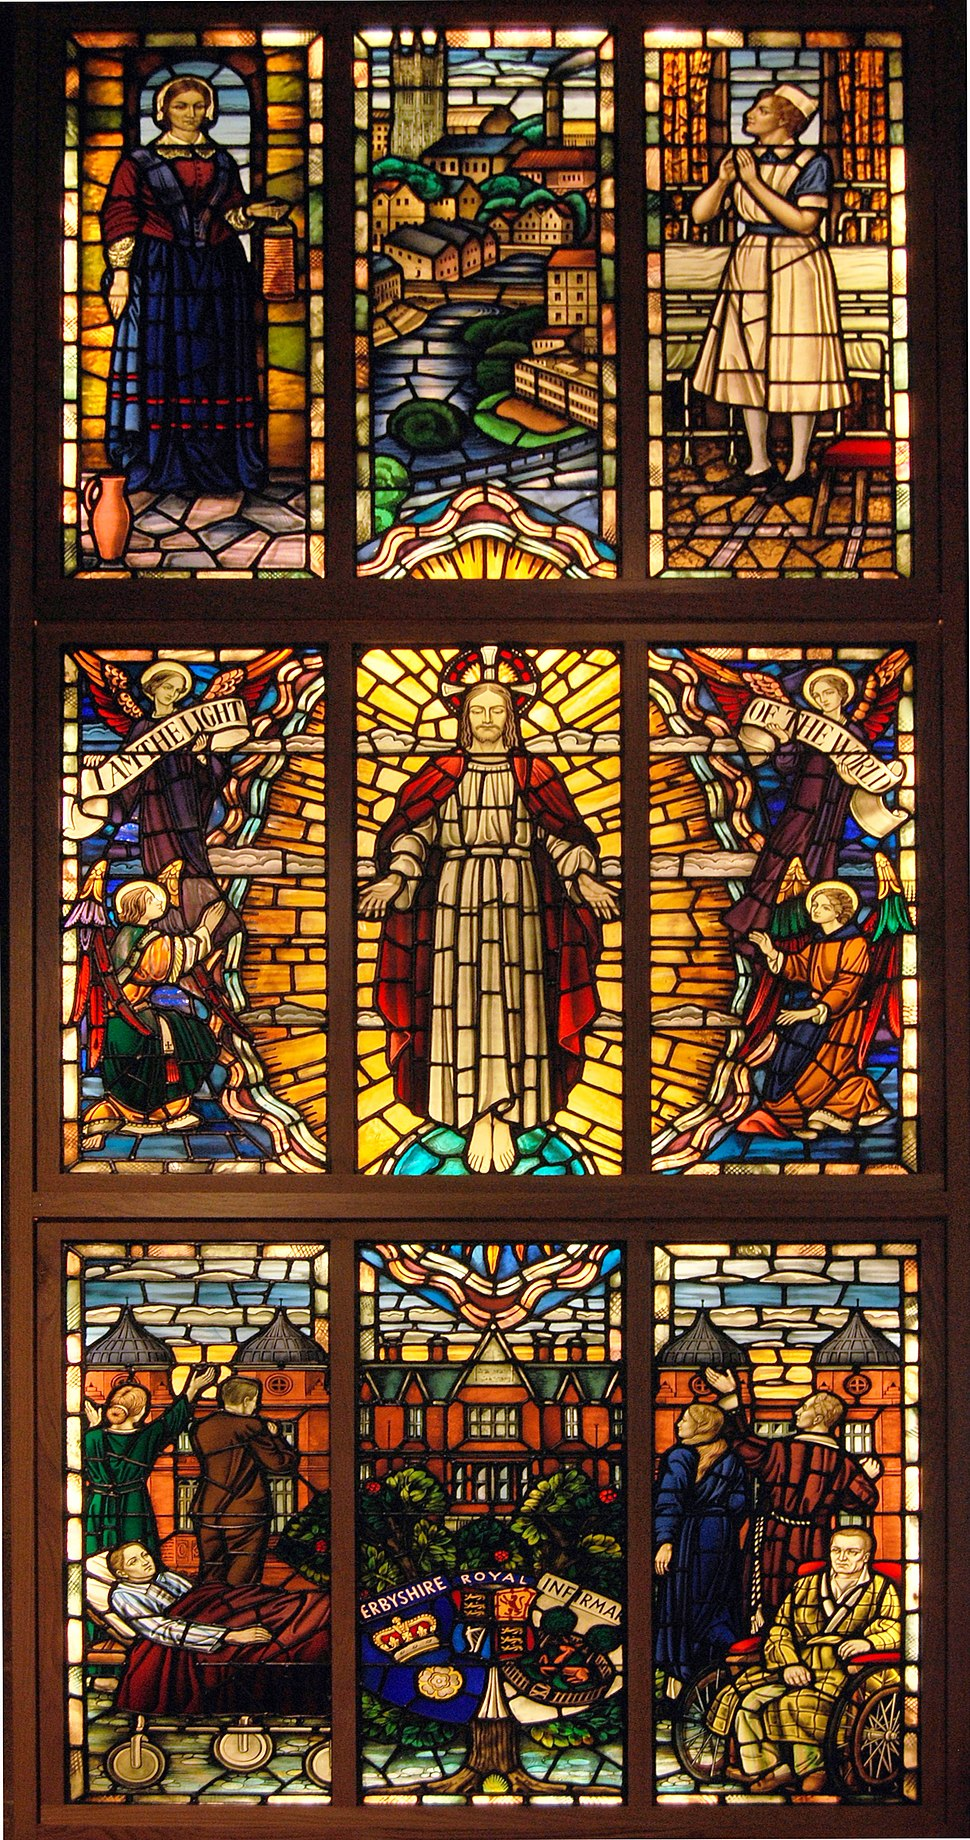 Derby DRI stained glass window at St Peters squared